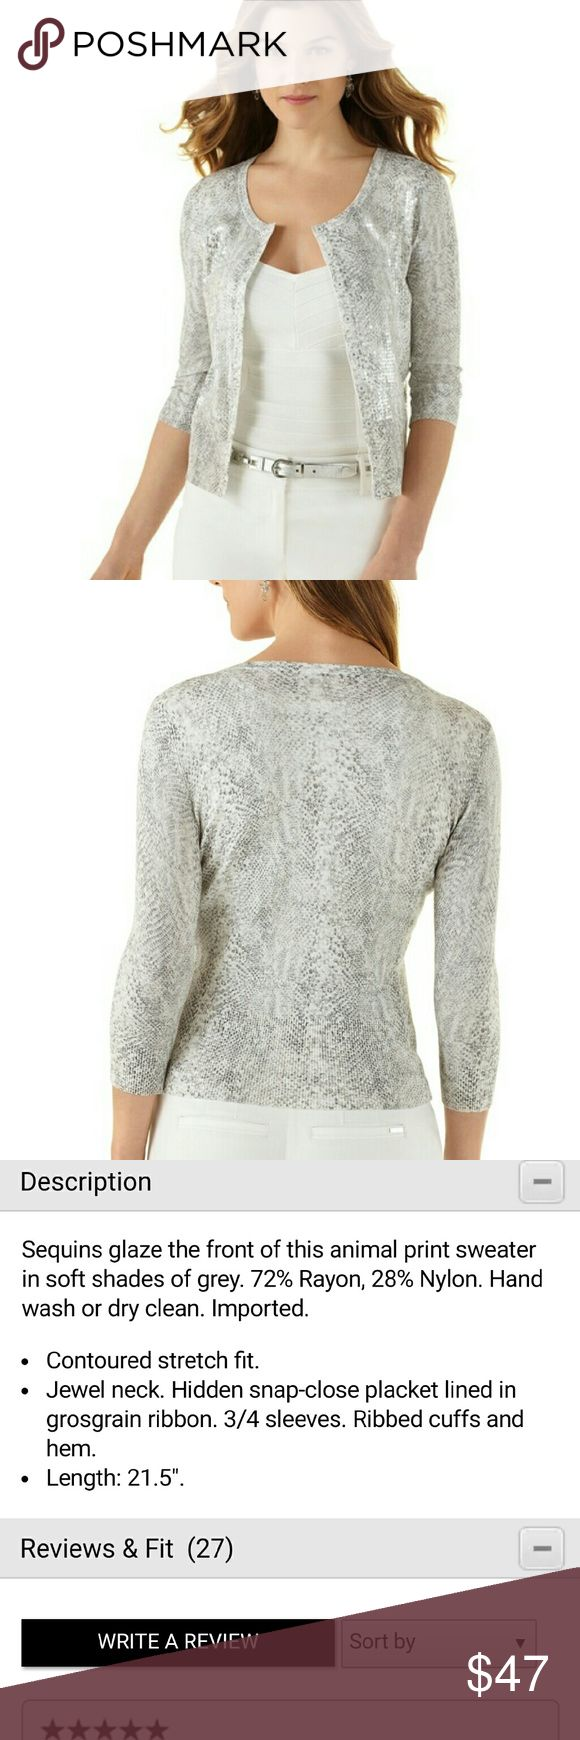 White House Black Market Snake & Sequin Cardigan S GORGEOUS!!!! Only worn twice, absolute show stopper. NO TRADES PLEASE DON'T ASK ME! White House Black Market Sweaters Cardigans